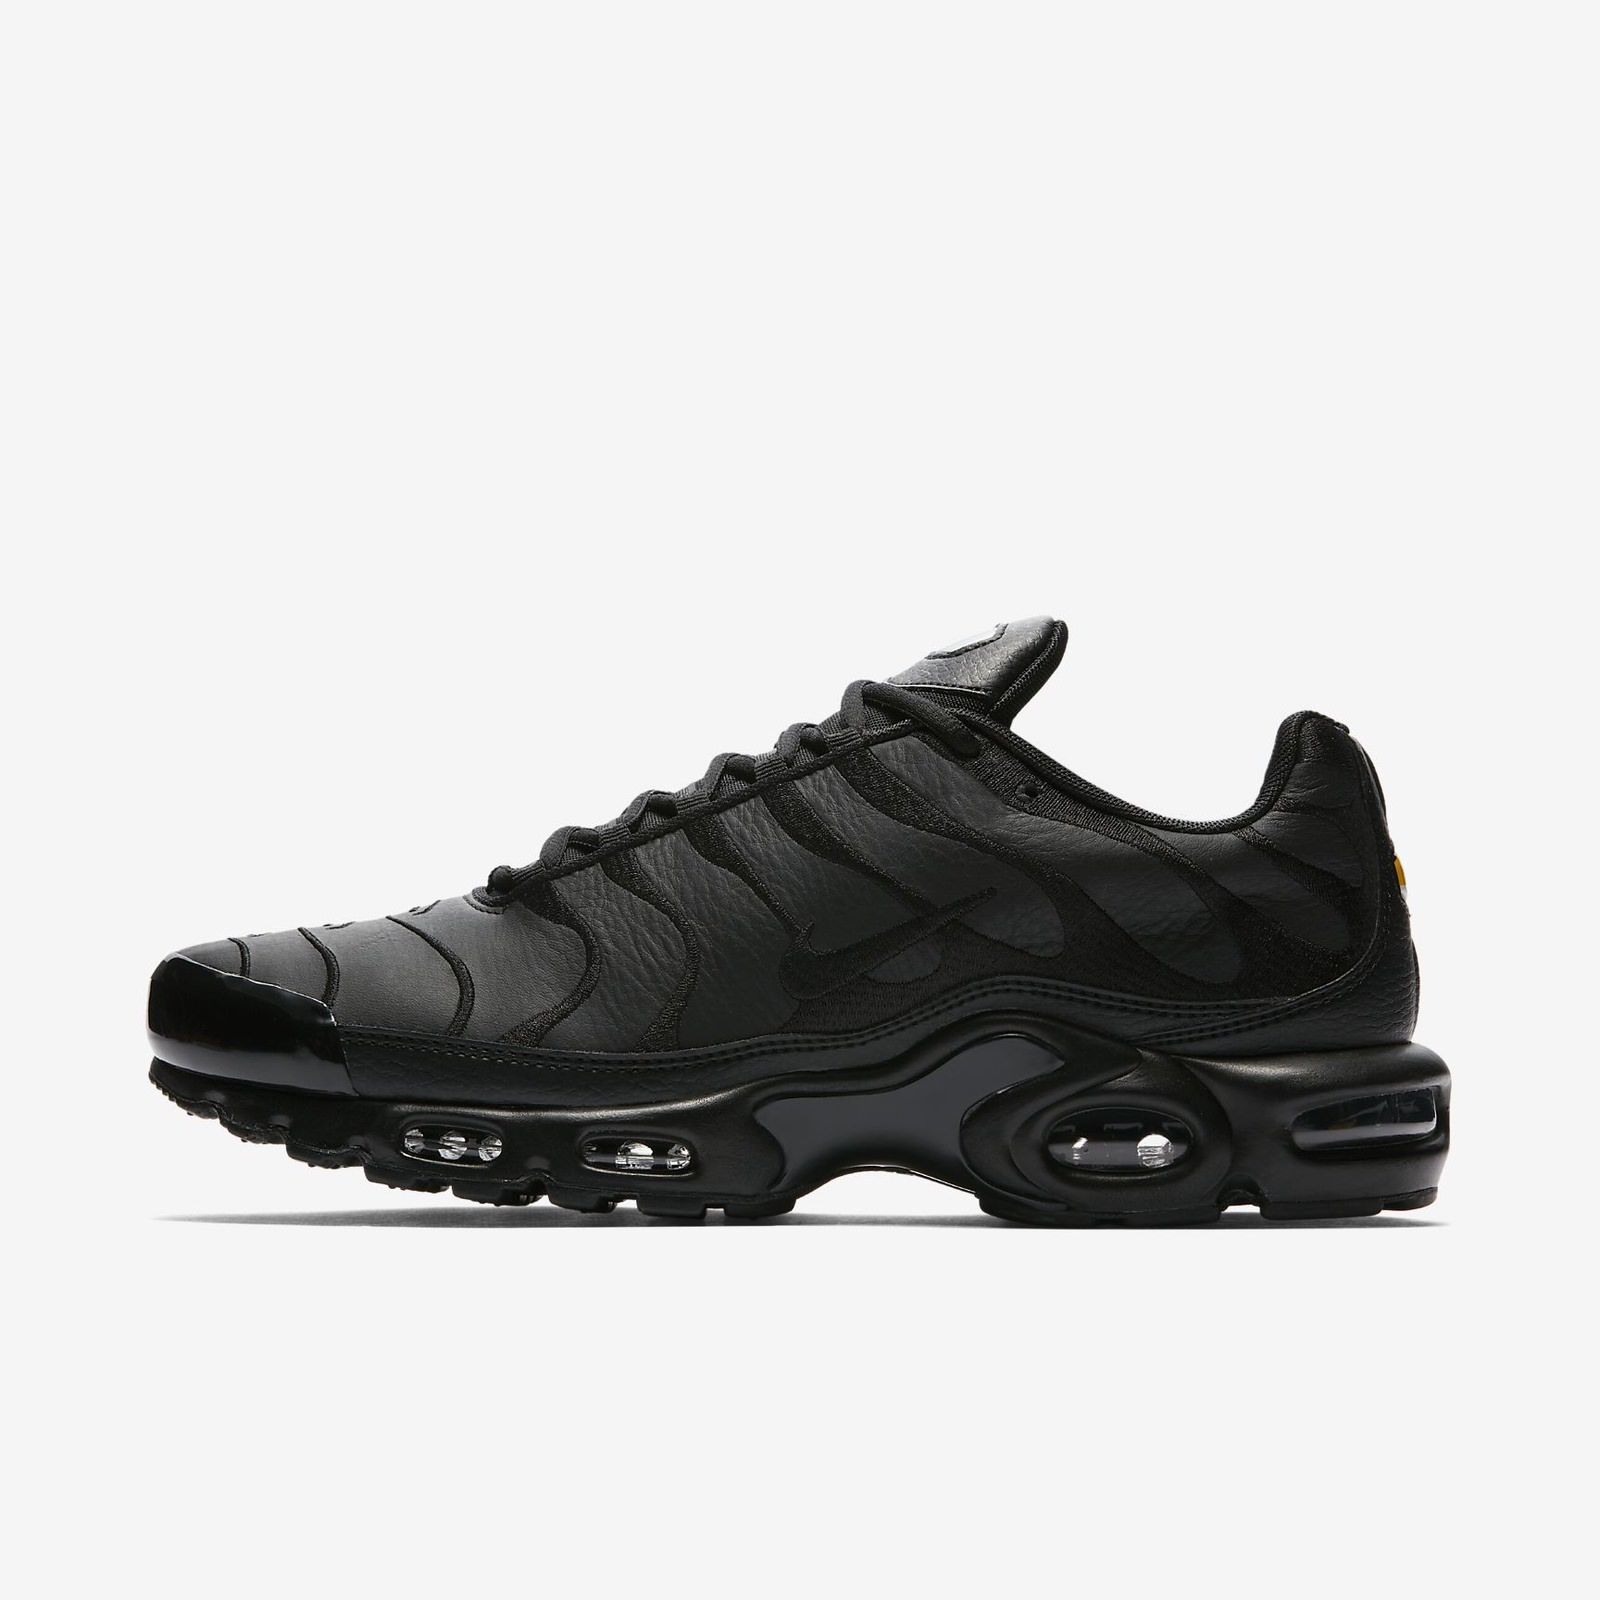 NIKE AIR MAX PLUS AJ2029-001 TRIPLE BLACK TUNED AIR TN 97 98 VAPORMAX